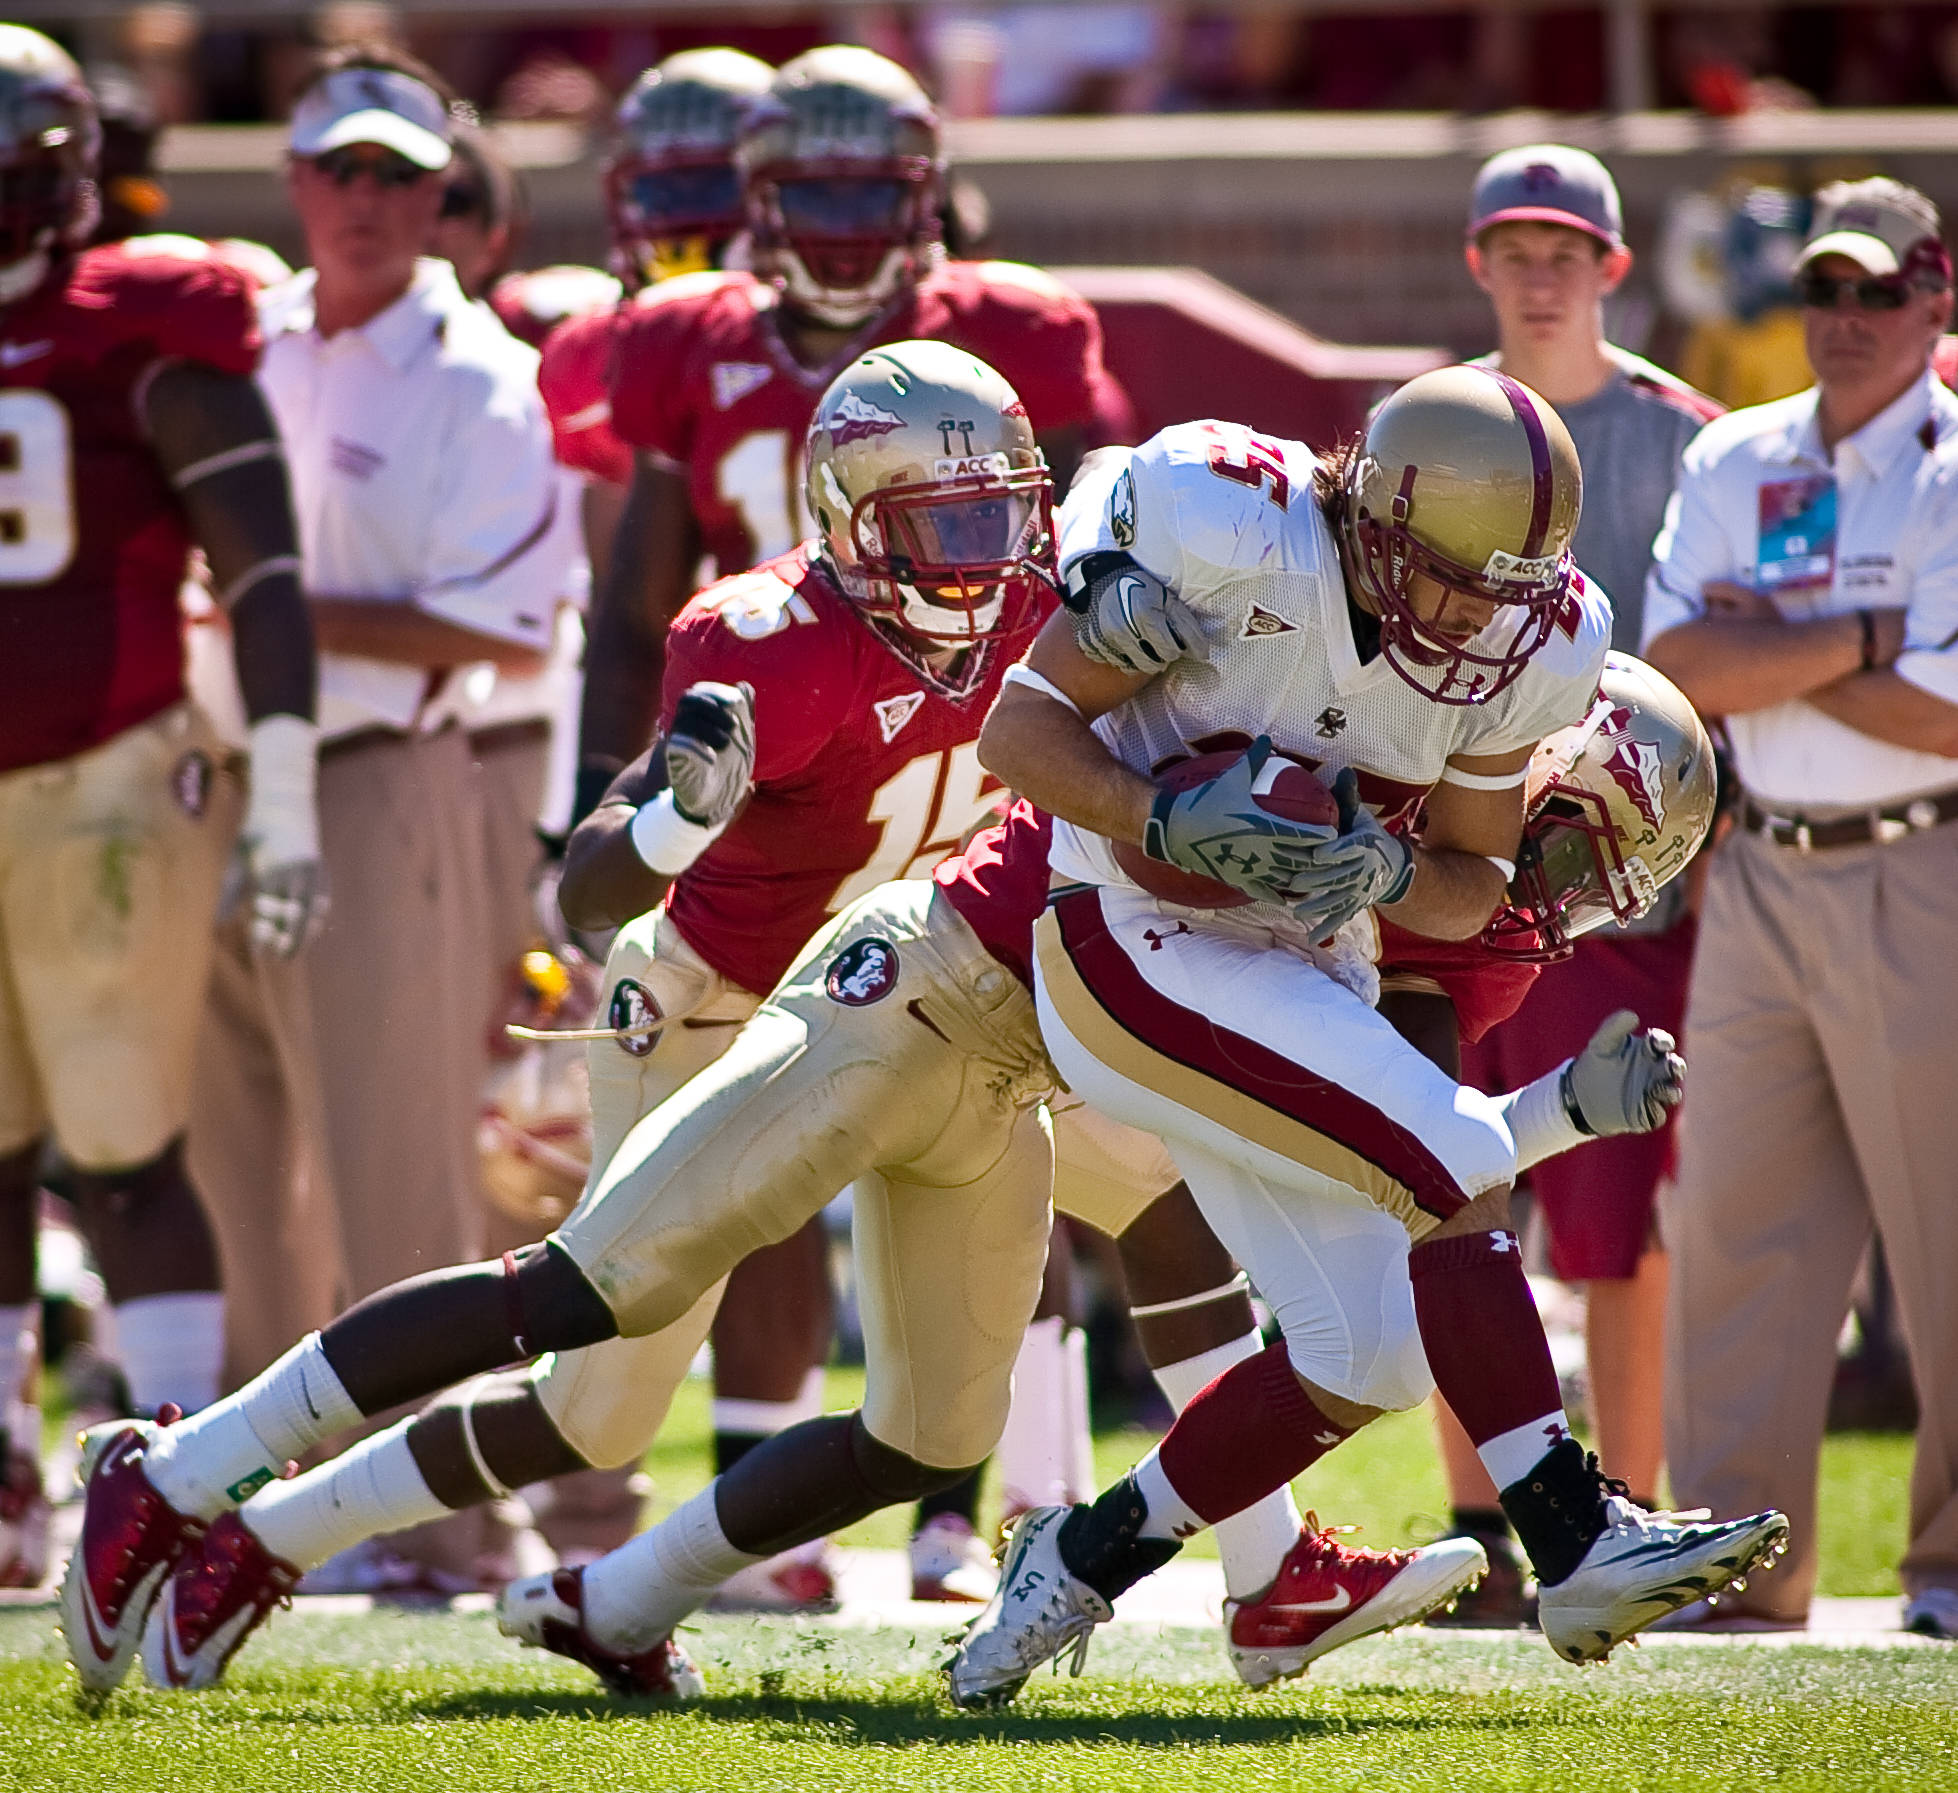 Seminole defenders make a tackle.